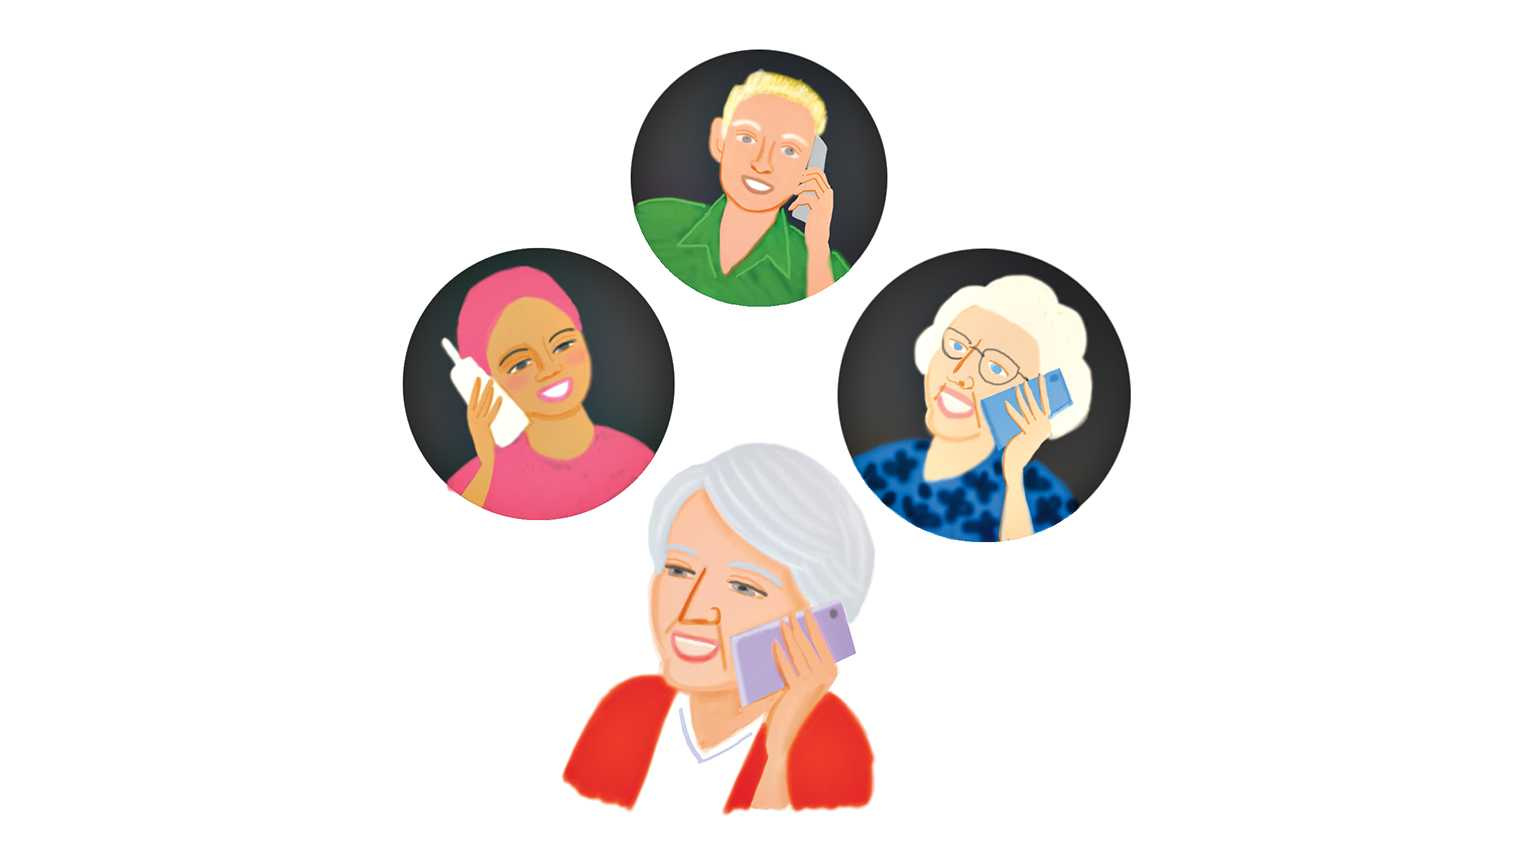 Four women making a telephone call; Illustration by Coco Masuda